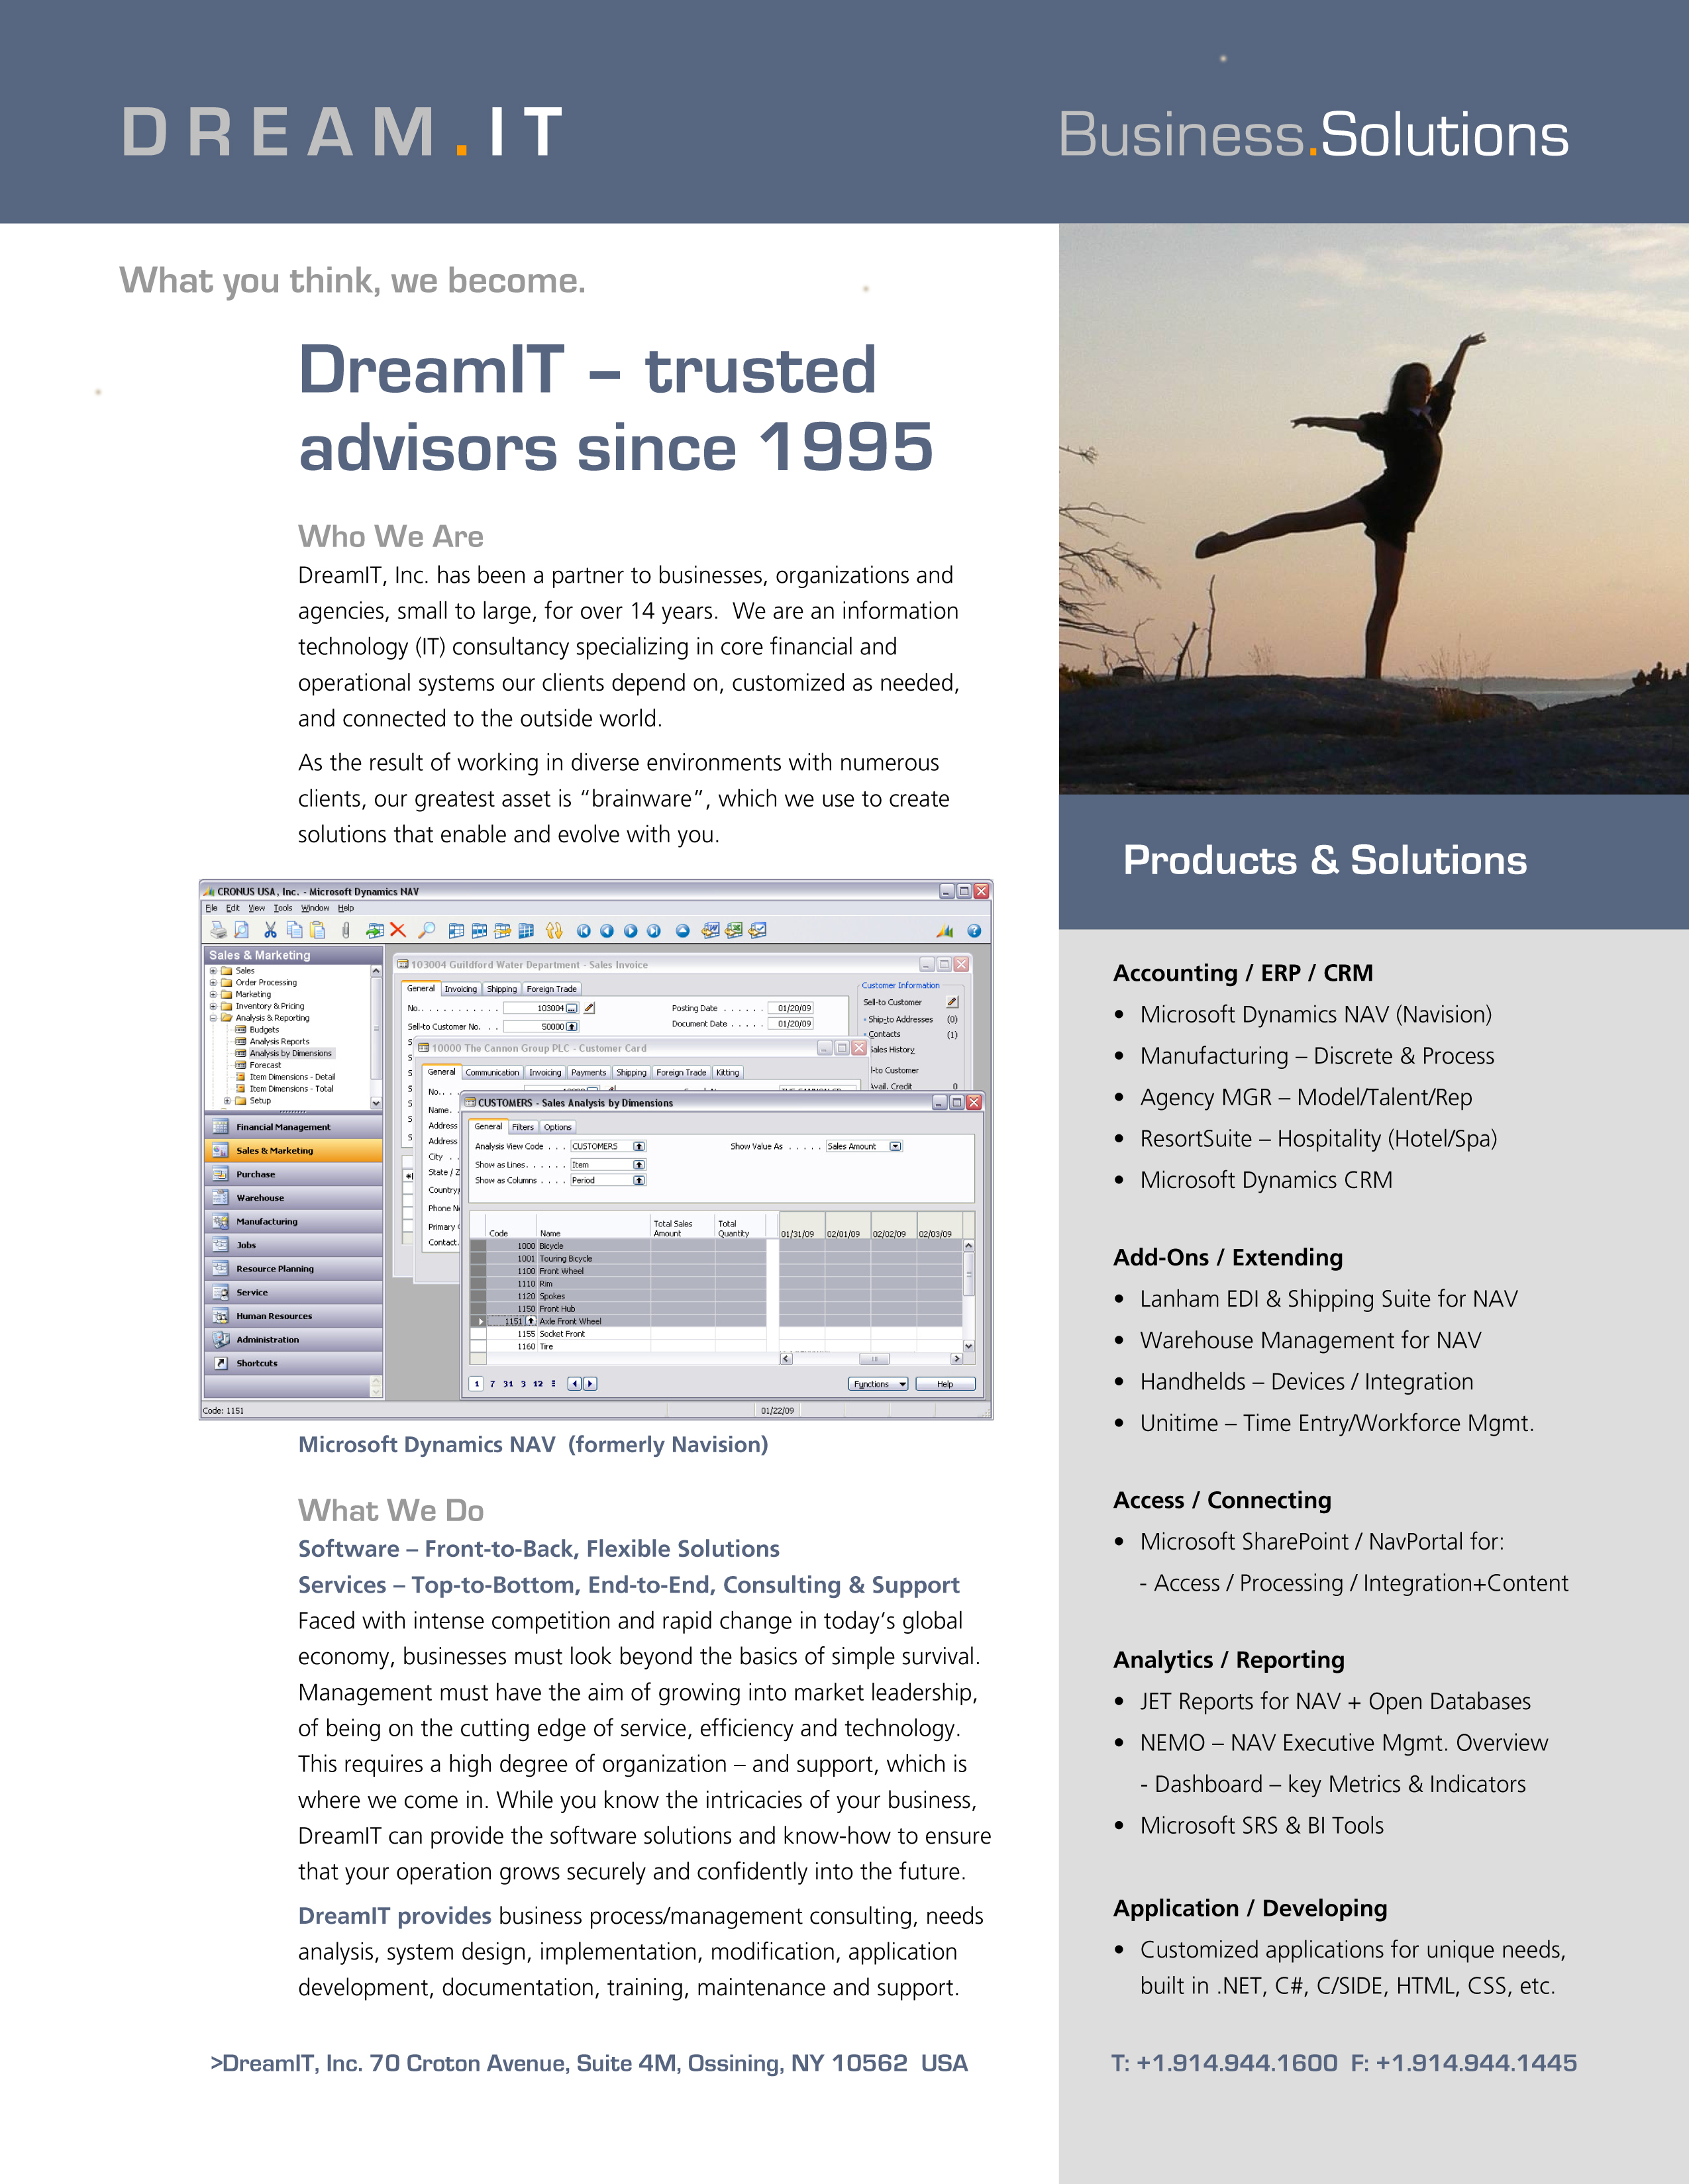 DreamIT Profile Advertisement